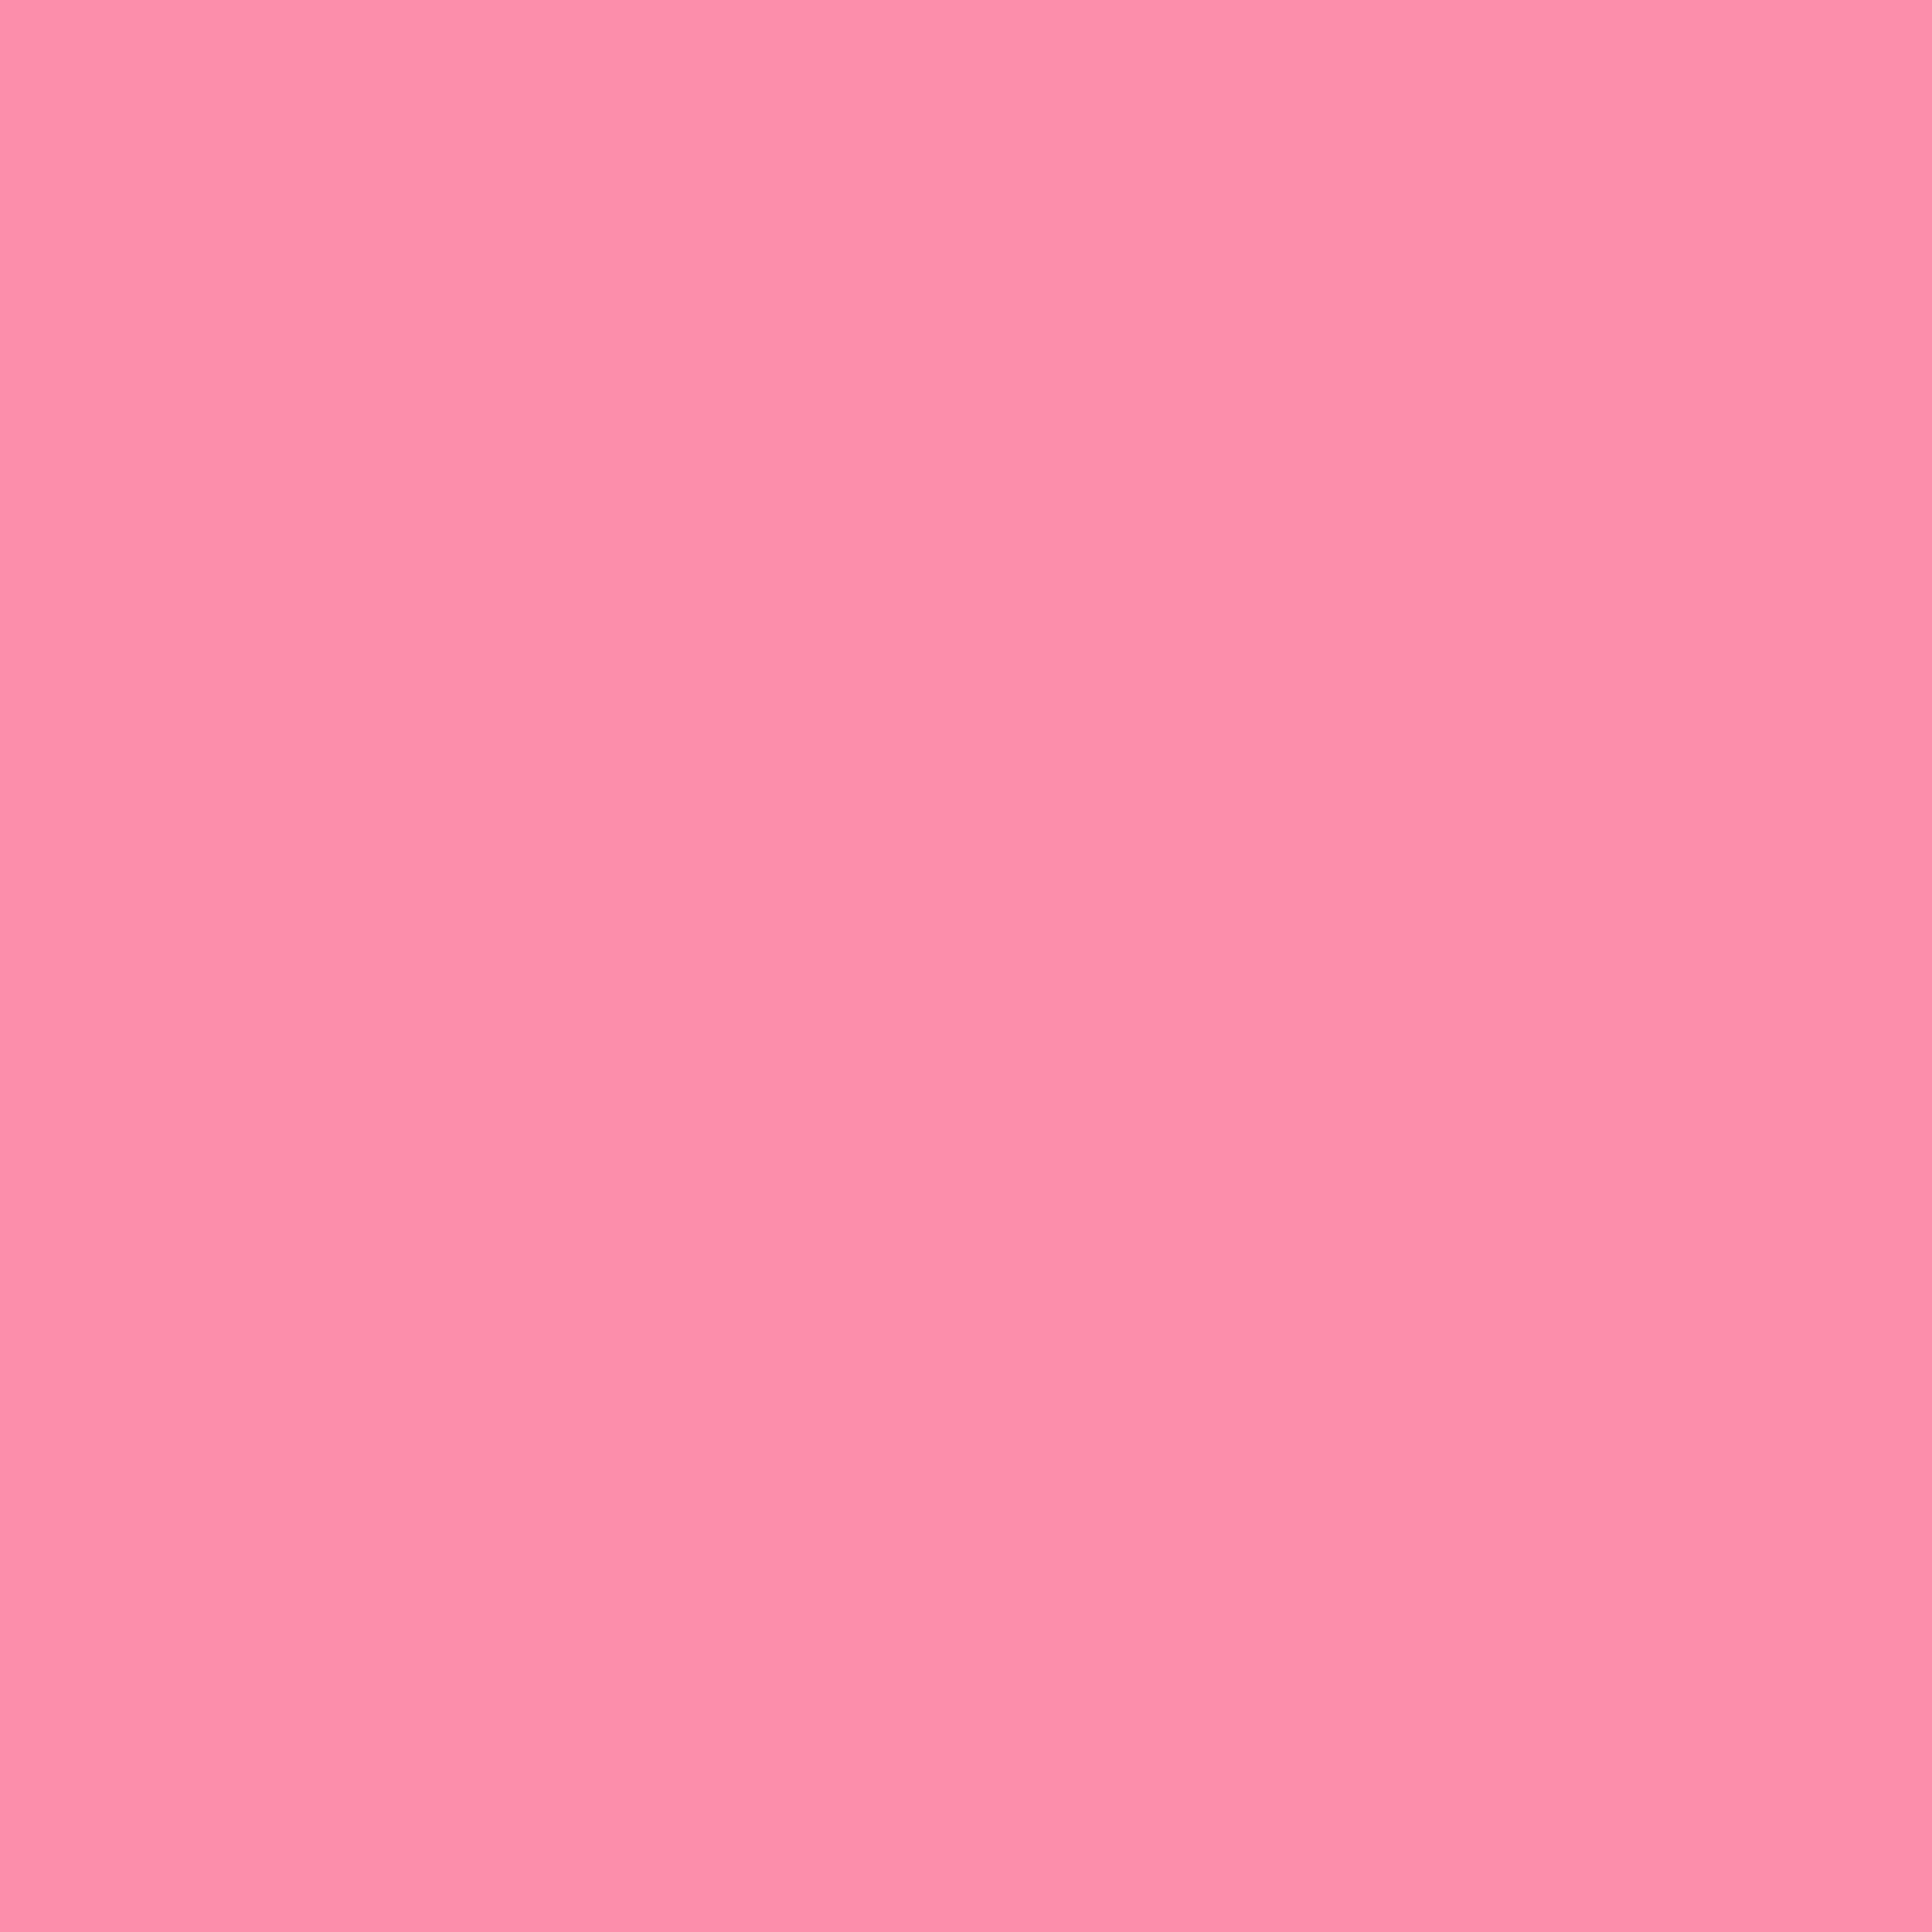 2732x2732 Flamingo Pink Solid Color Background